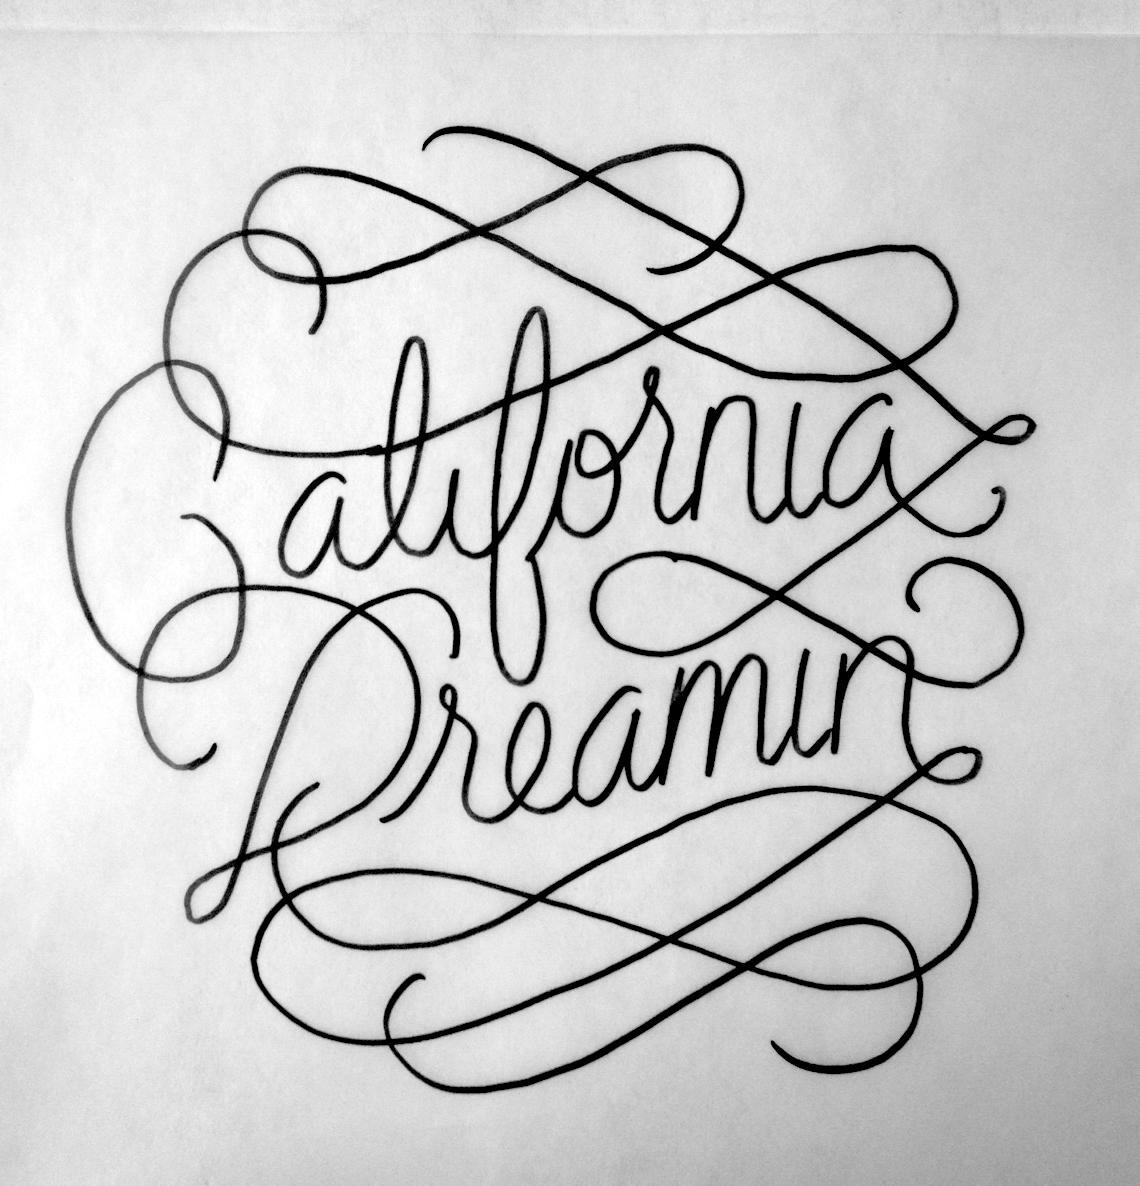 California Dreamin - image 6 - student project